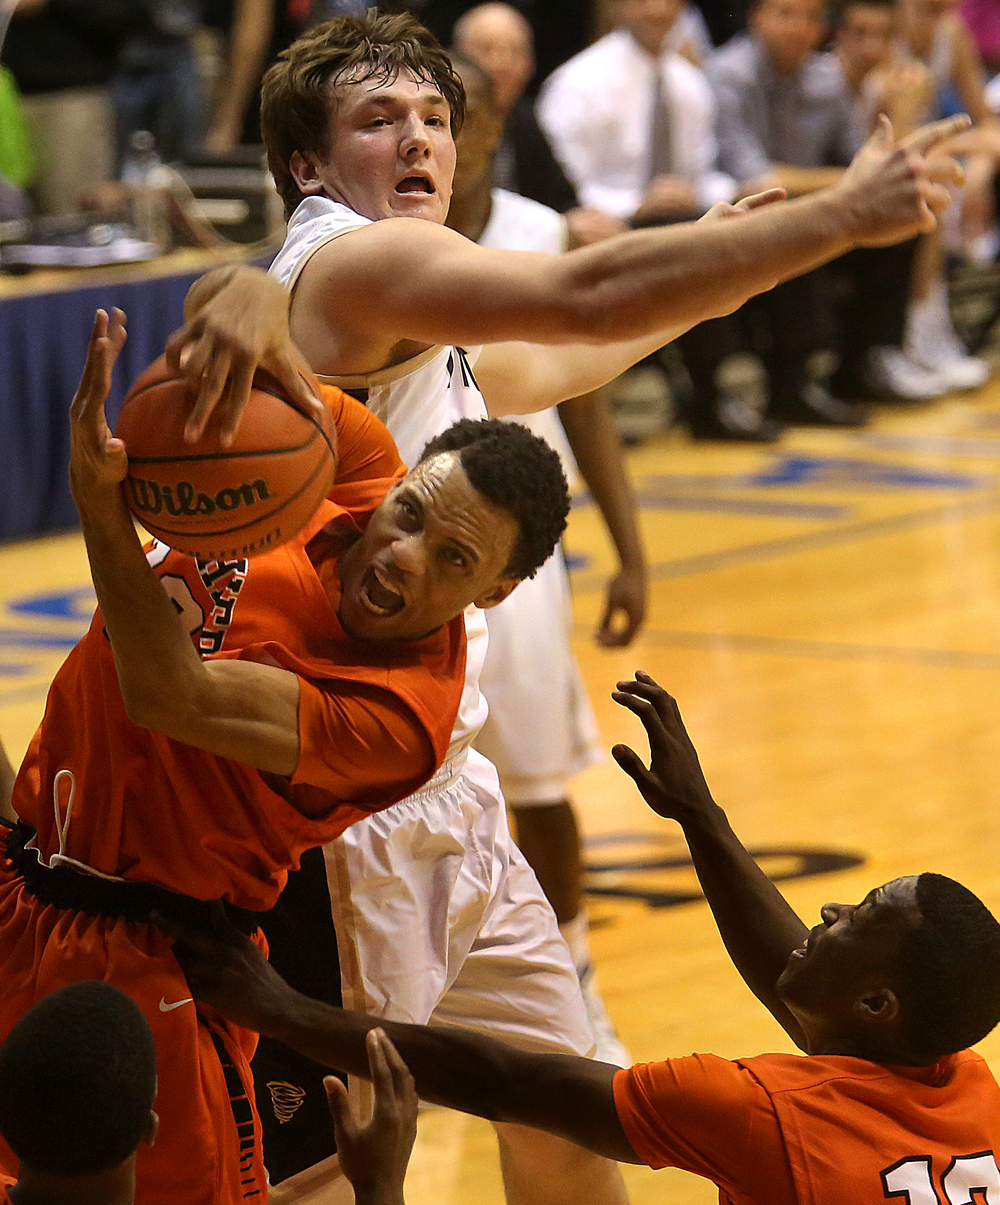 Lanphier player Daryl Jackson pulls down a rebound under pressure from Sacred Heart-Griffin's Michael Zeigler. Lanphier High School defeated Sacred Heart-Griffin 73-42 during first night action at the Boys City Basketball Tournament at the Prairie Capital Convention Center in Springfield on Thursday, Jan. 22, 2015. David Spencer/The State Journal-Register